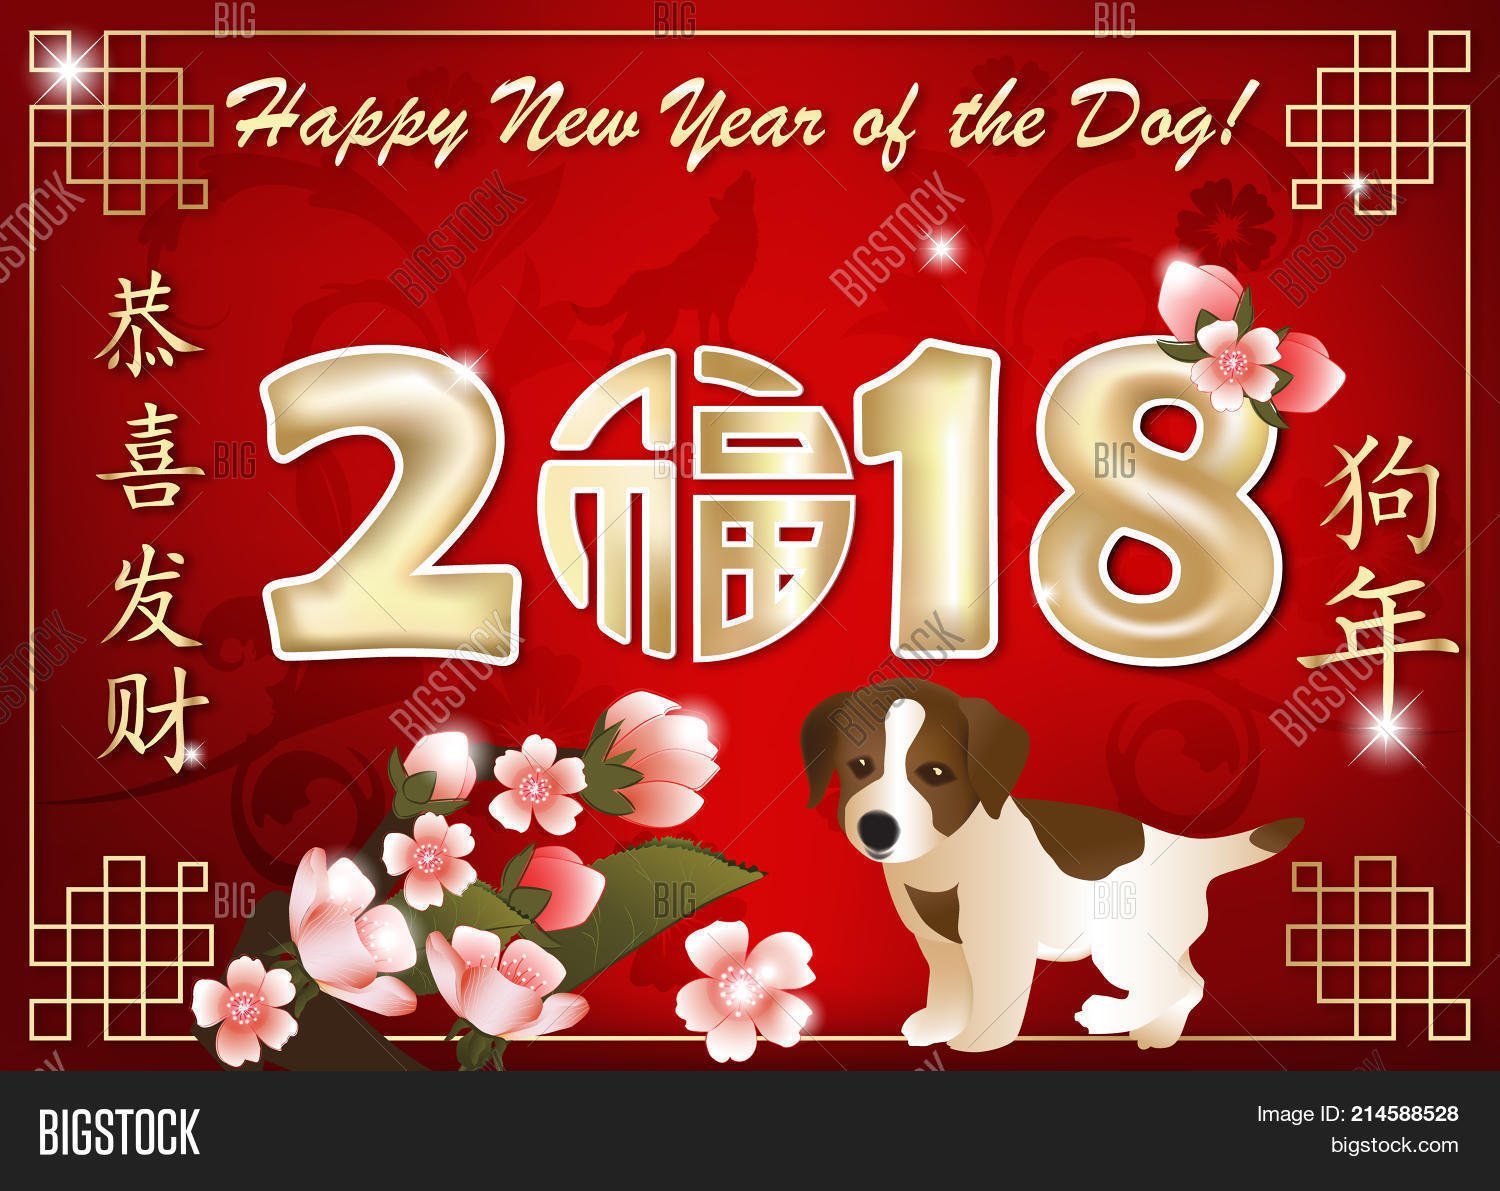 Happy Chinese New Year Image Photo Free Trial Bigstock